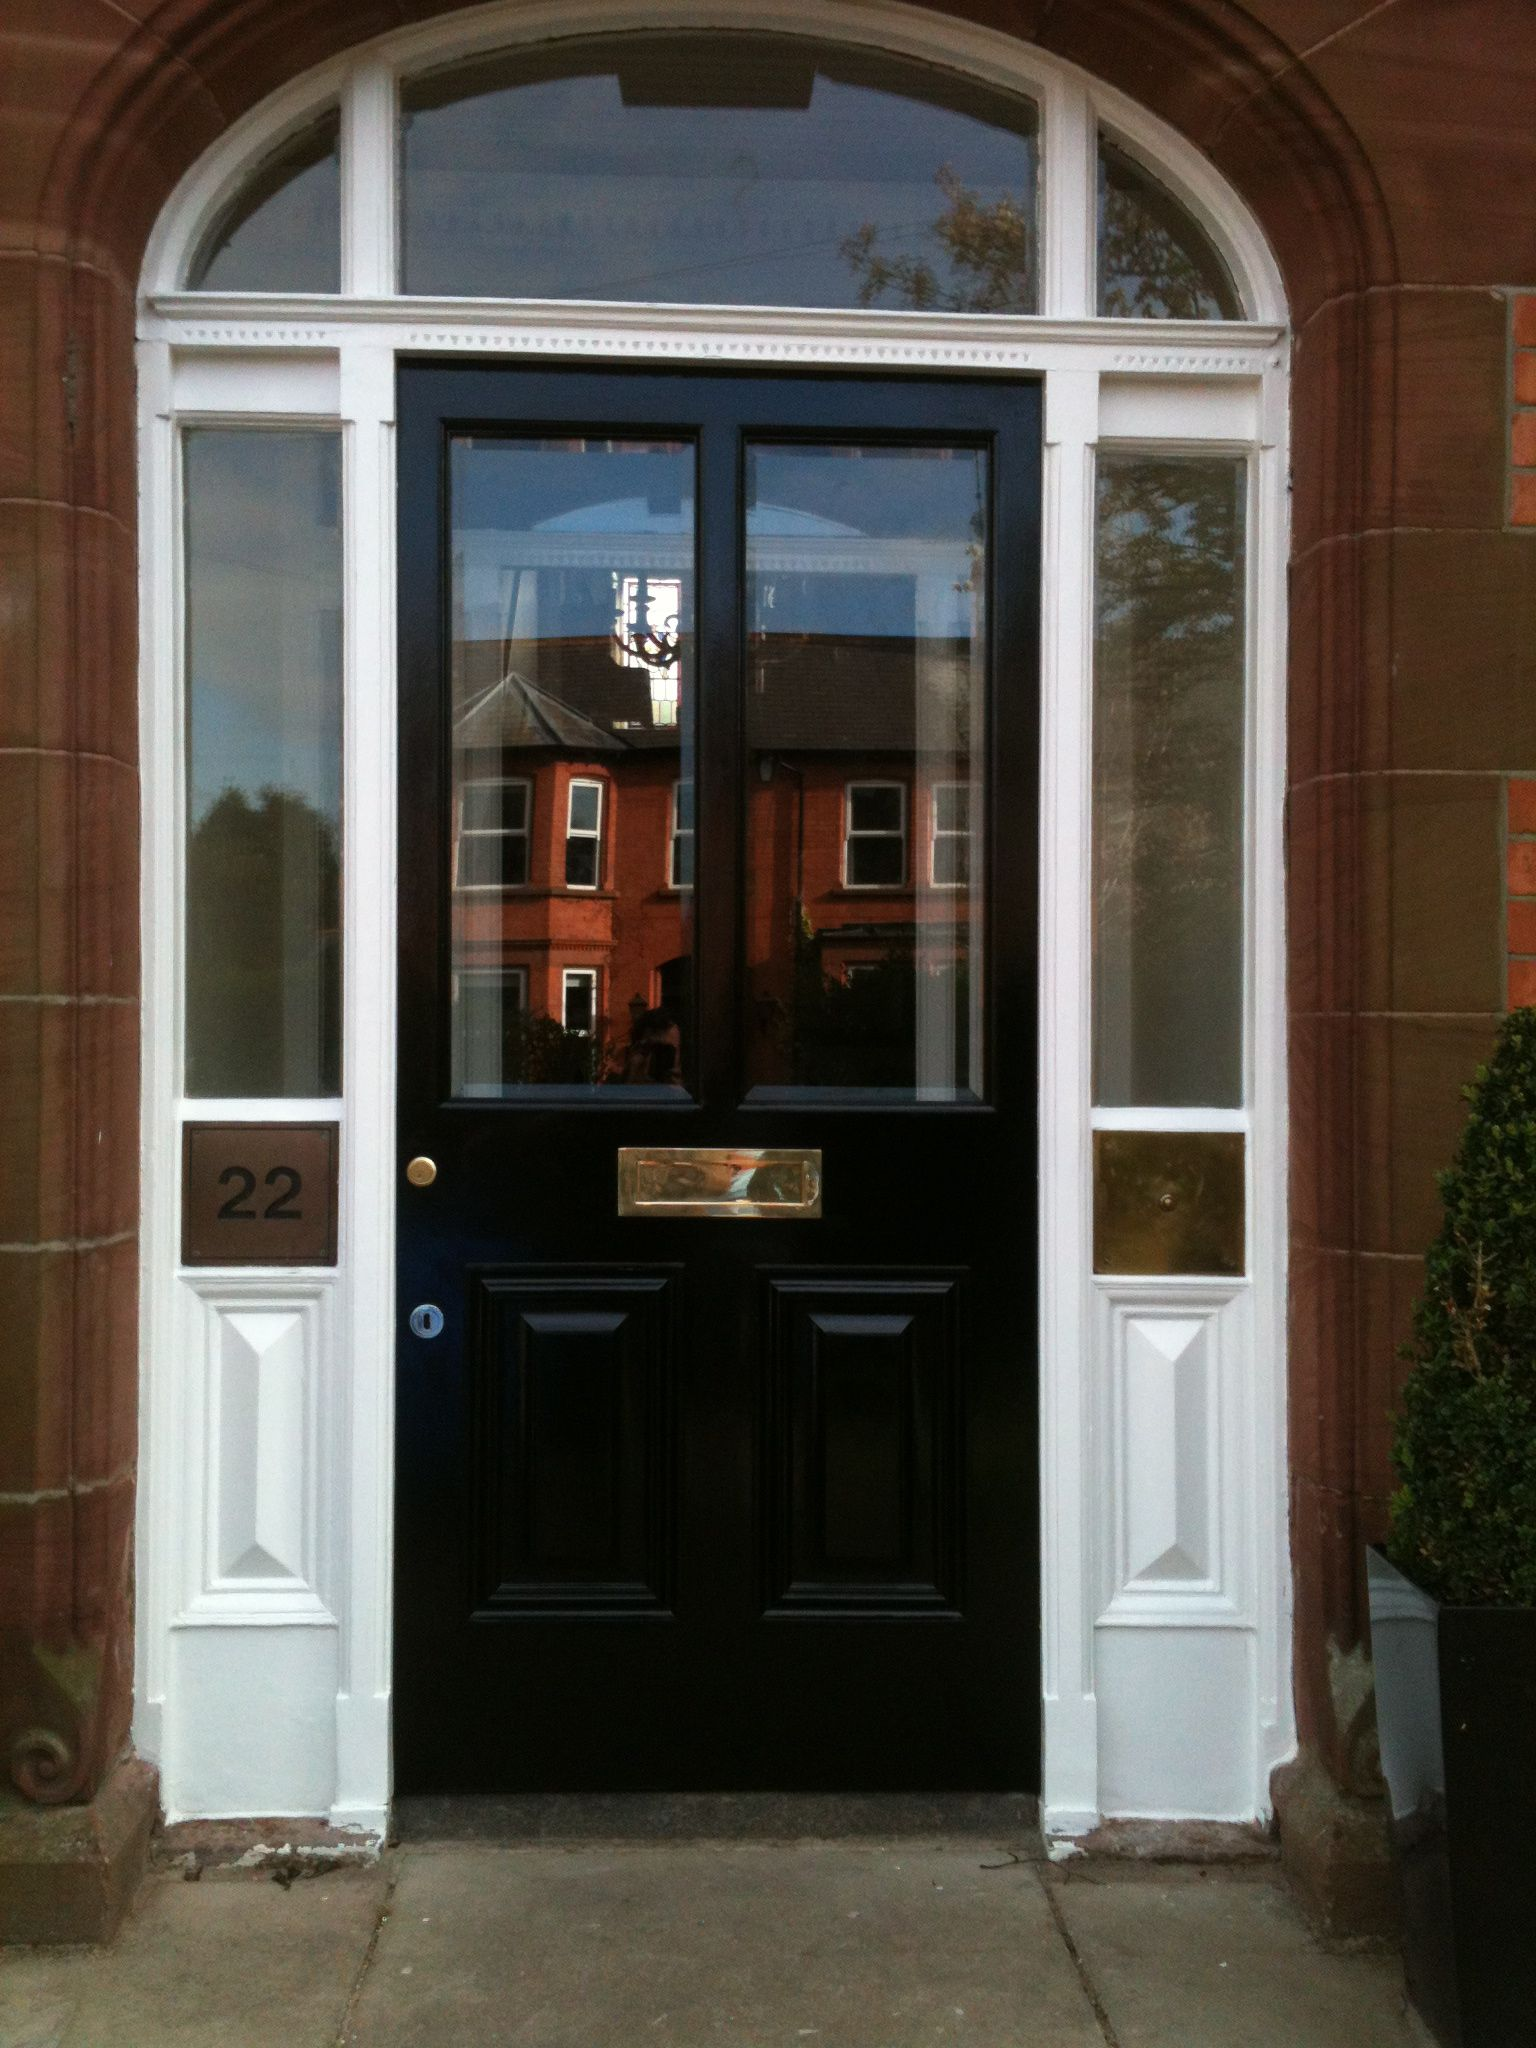 Bespoke hardwood painted entrance door with matching frame and glazed lights by Belfast Bespoke & Bespoke hardwood painted entrance door with matching frame and ...